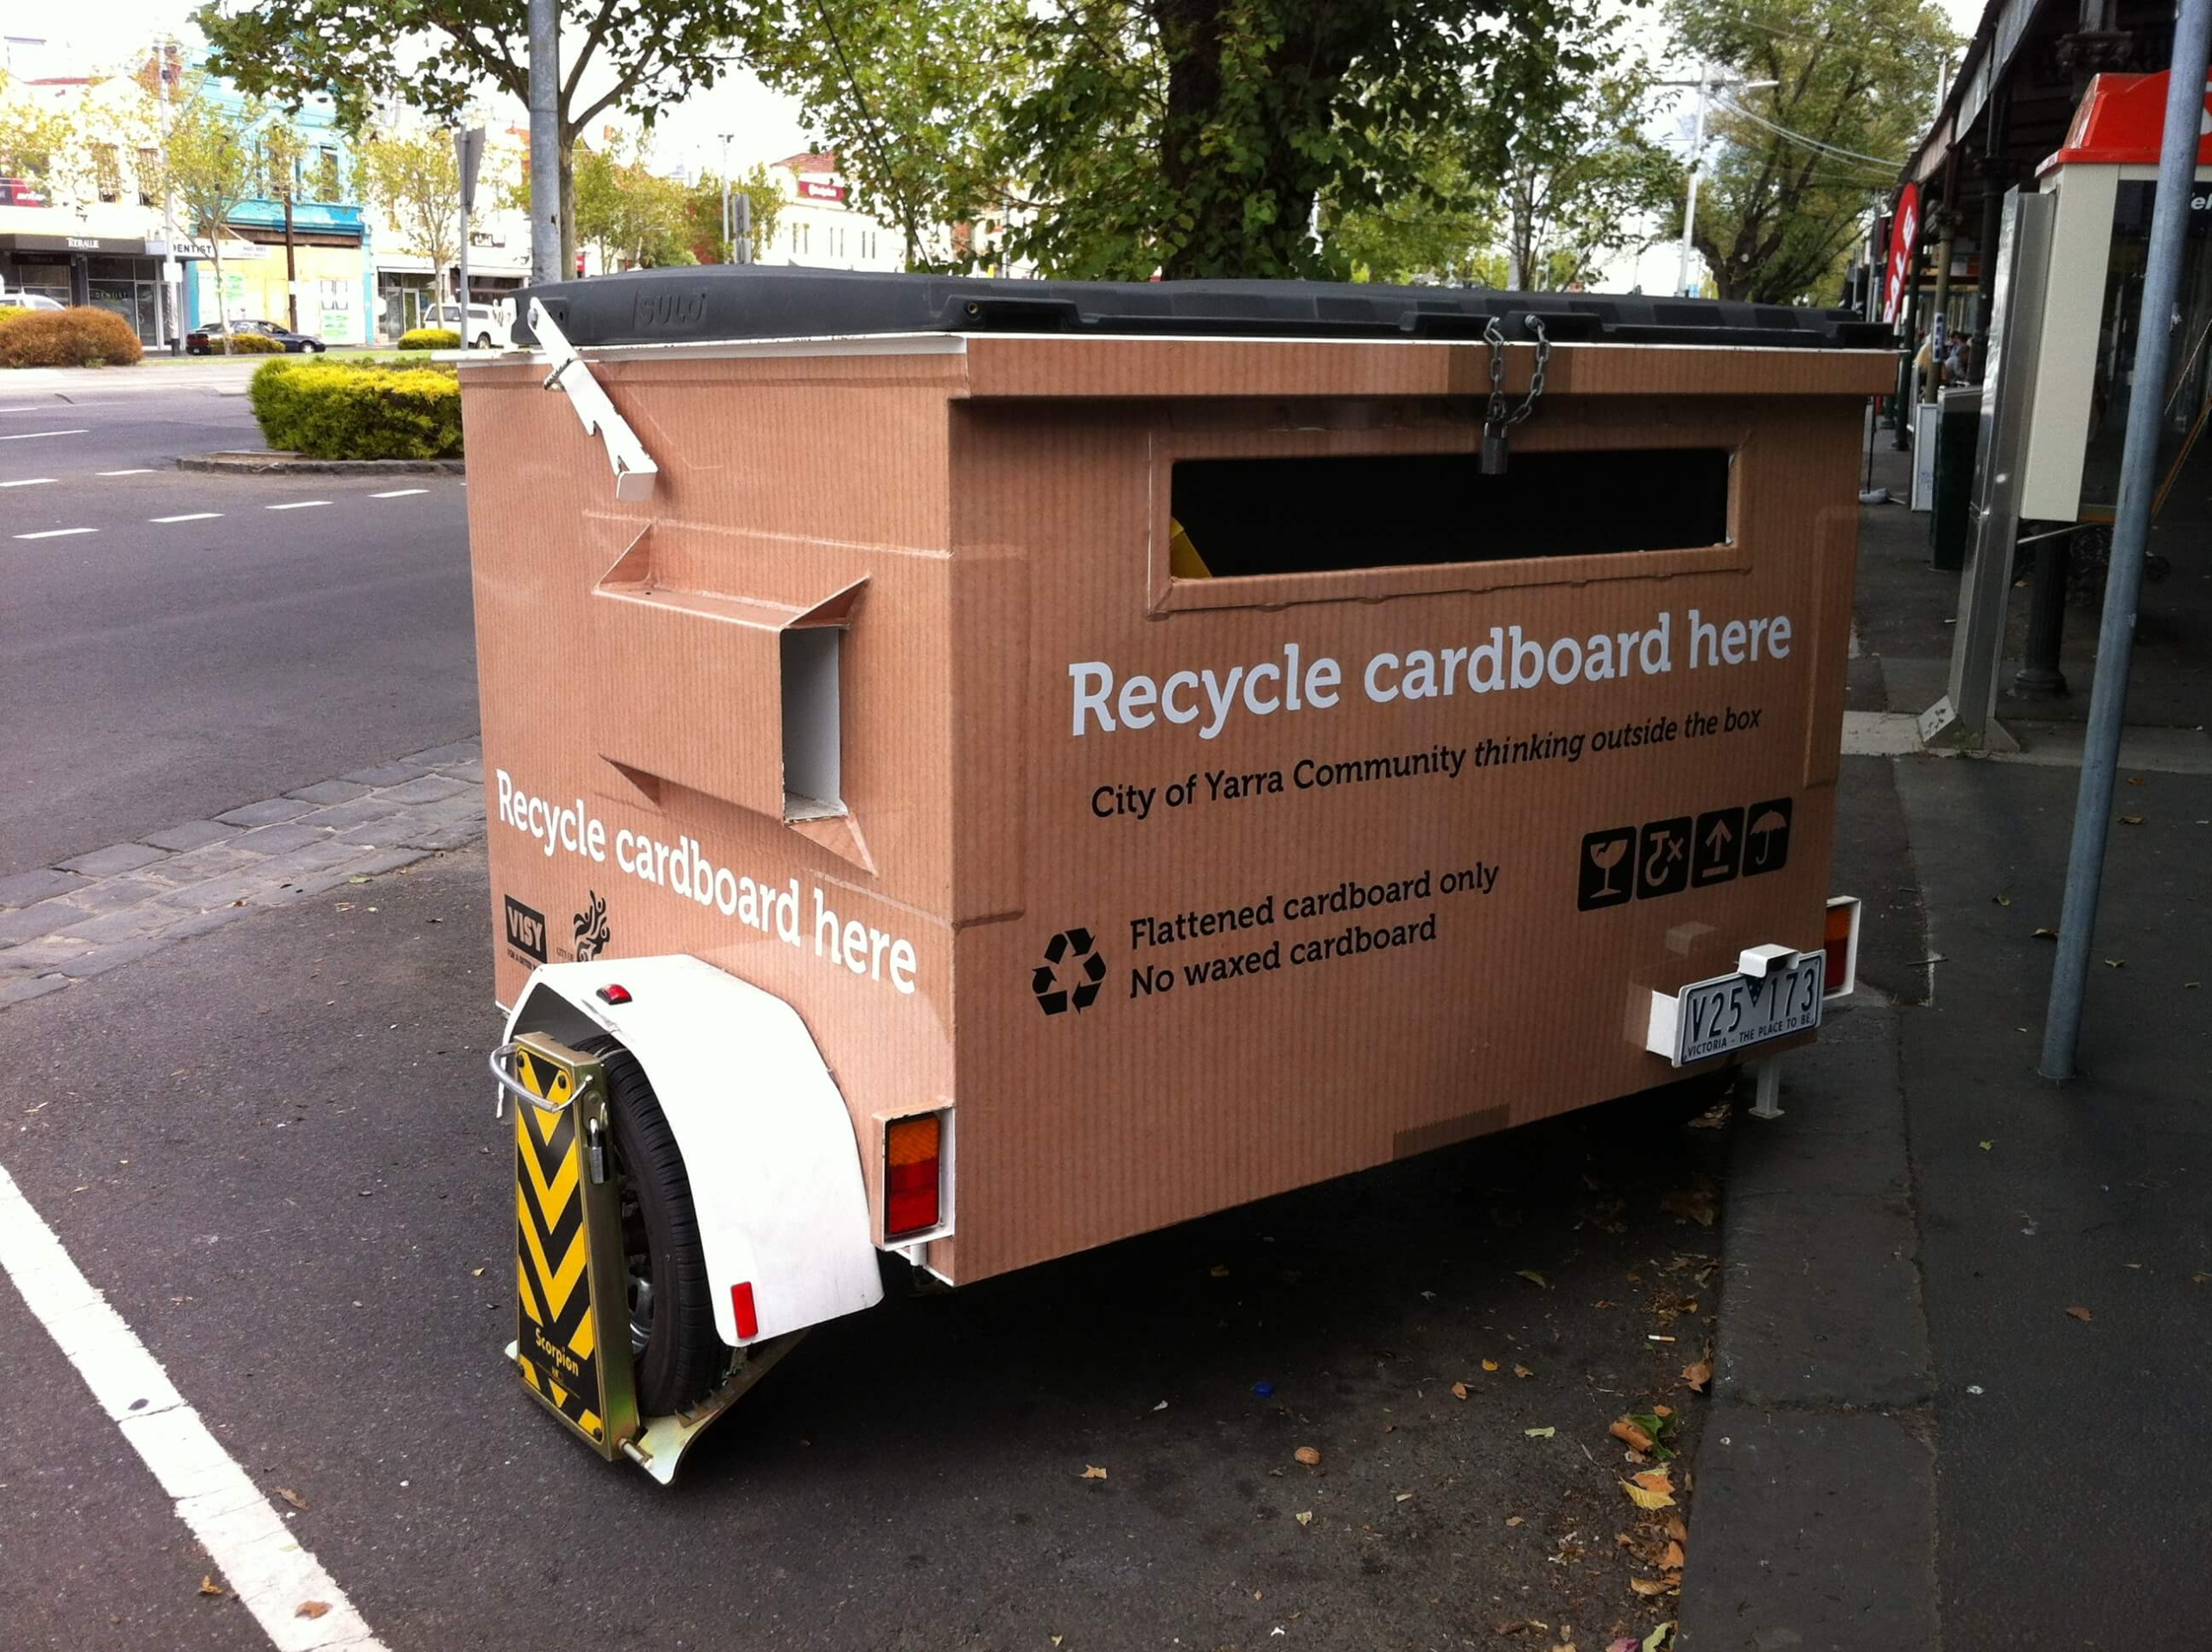 cardboard recycling for waste management plans